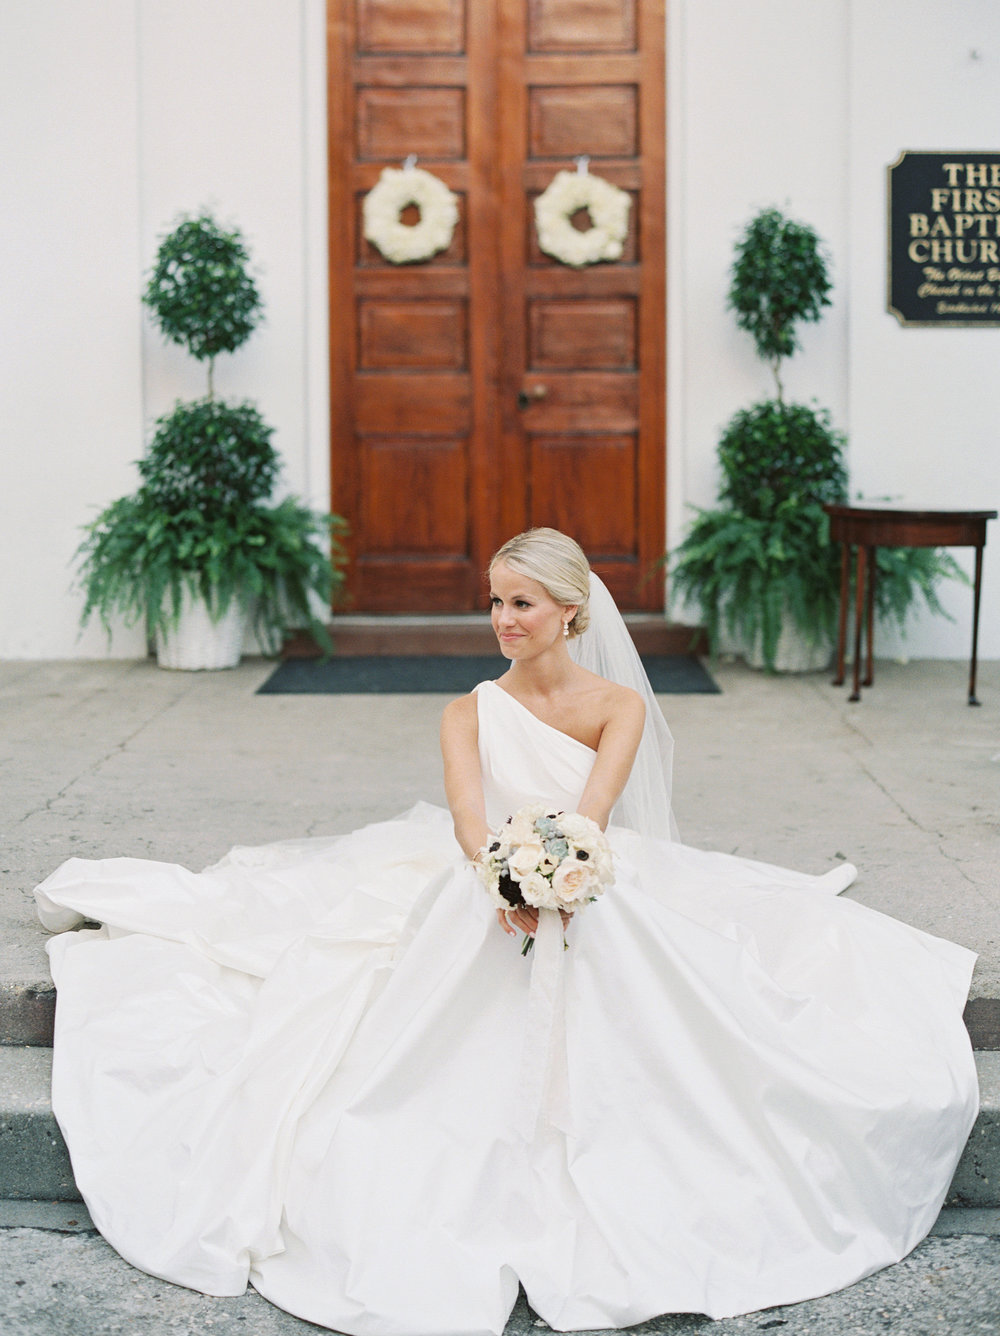 Charleston bride in Romona Keveza wedding gown from Maddison Row  //  Wedding photography by Landon Jacob  //  A Lowcountry Wedding Magazine